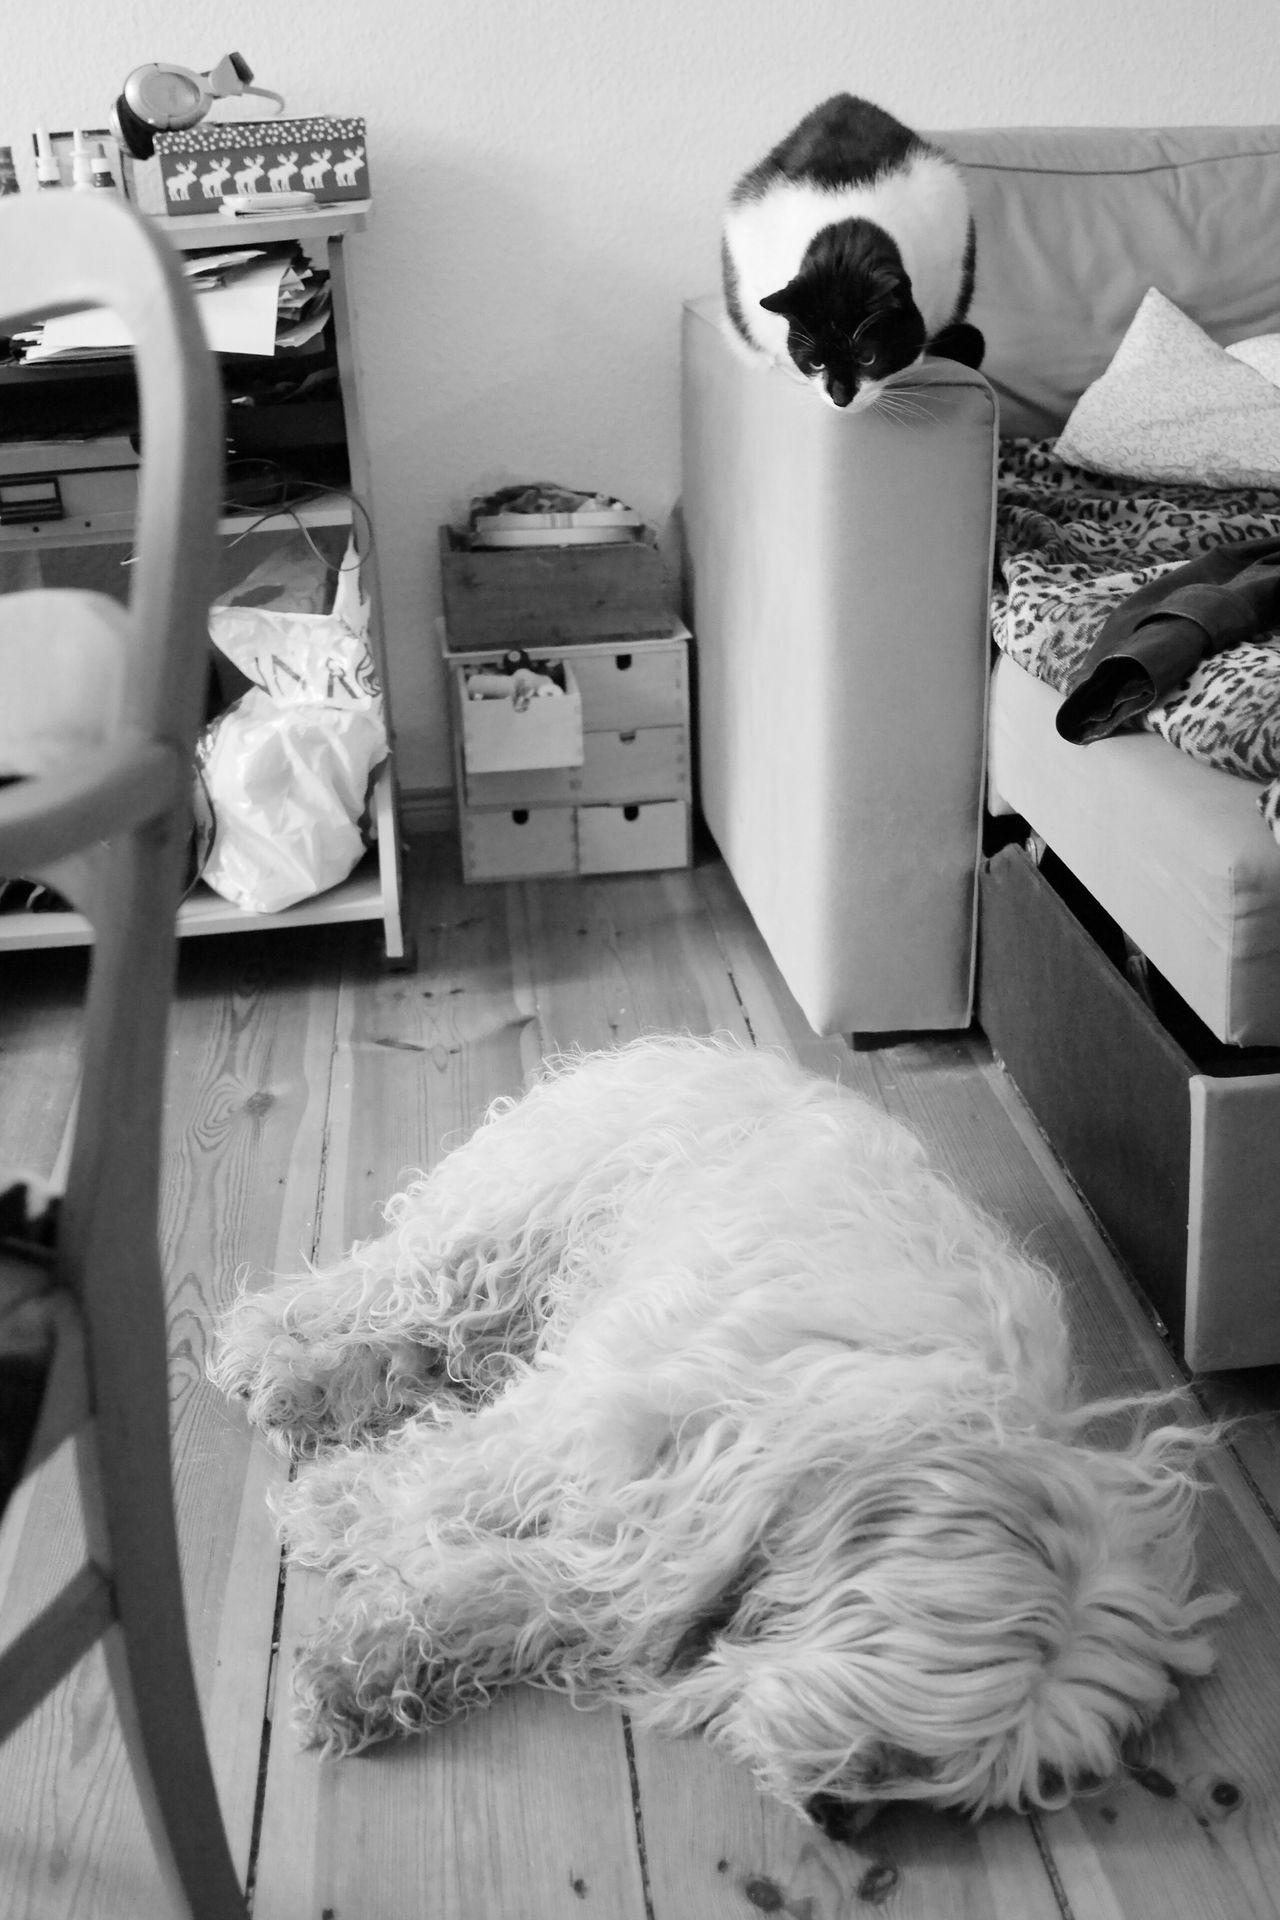 Who Is That Guy Anyway? Cat Cats Dog Dogs no Communication Sceptical Sceptic Cat Sleeping Sleeping Dog Sleeping Beauty Relaxing Relaxing Time Relaxing Moments Indoors  My Point Of View From My Point Of View Monochrome Photography